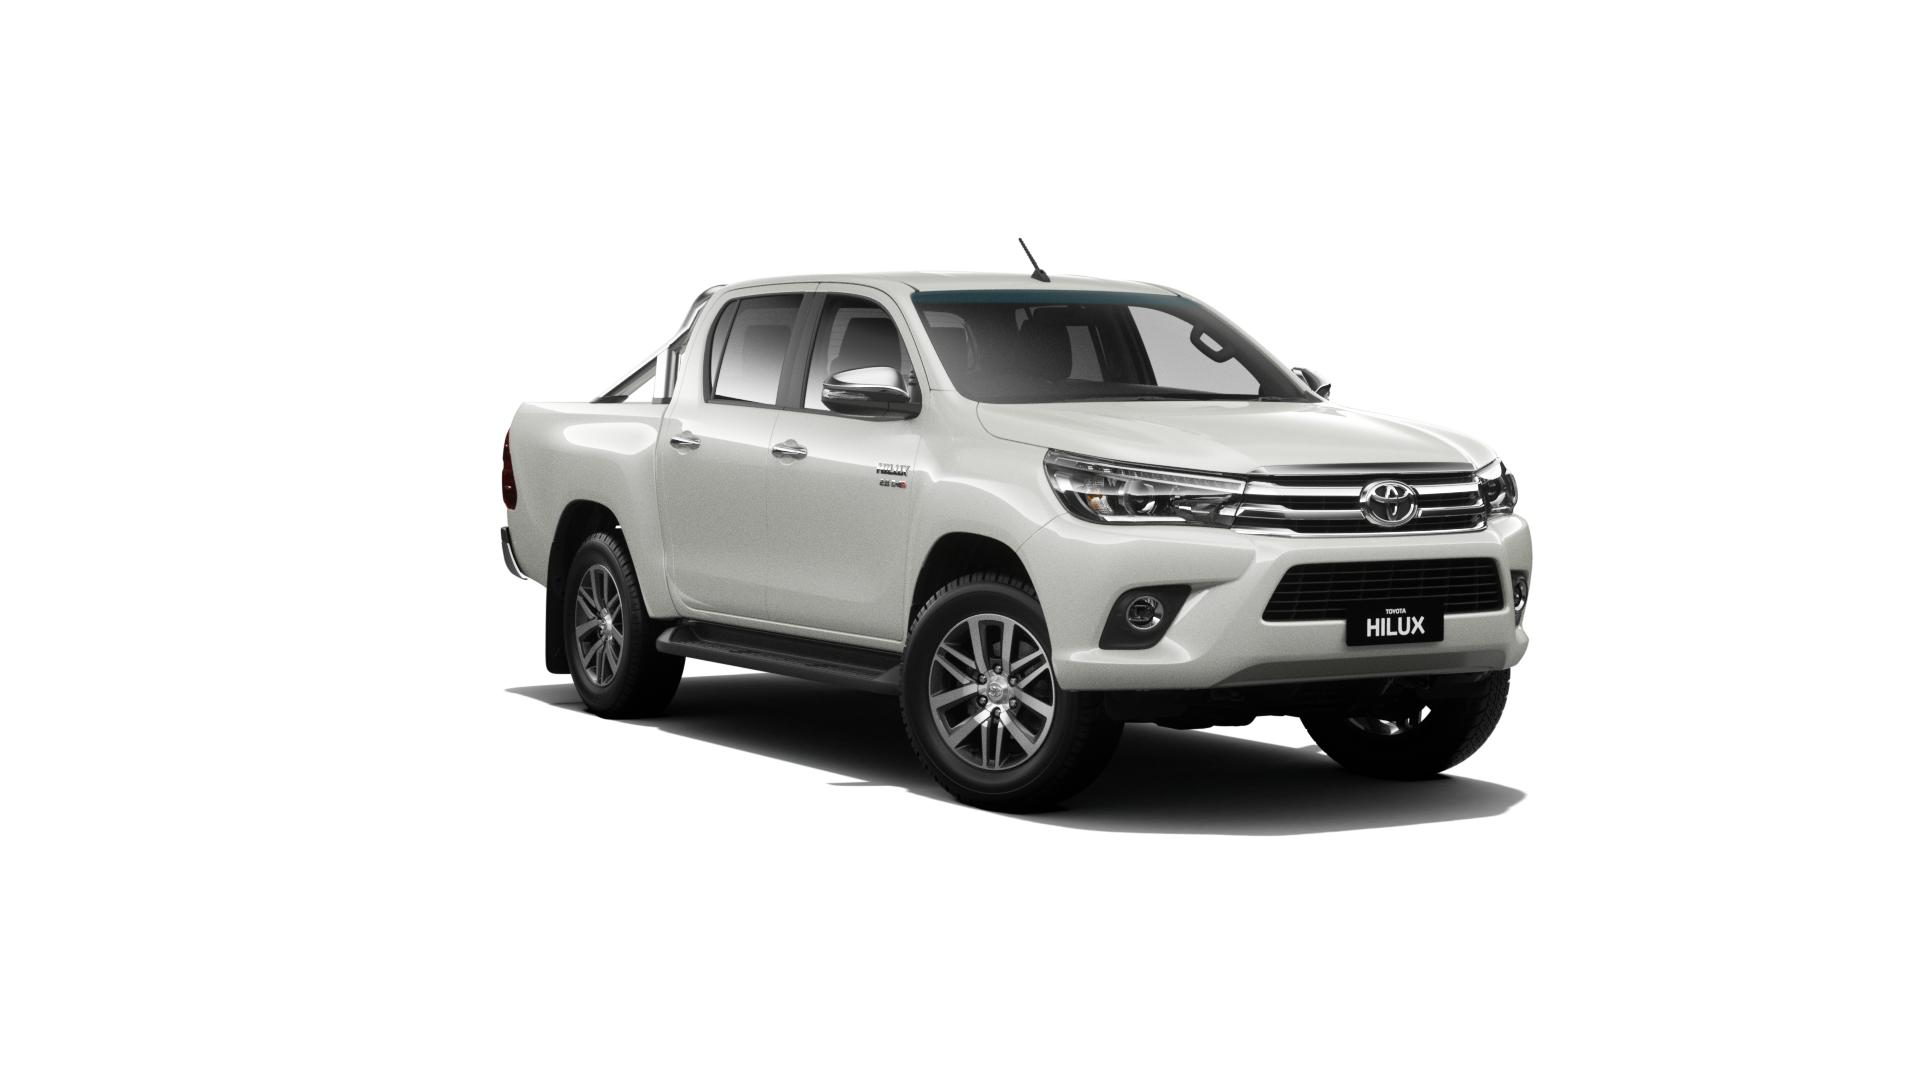 Toyota HiLux 4x4 SR5 Double-Cab Pick-up | Sci-Fleet Toyota Test Drive